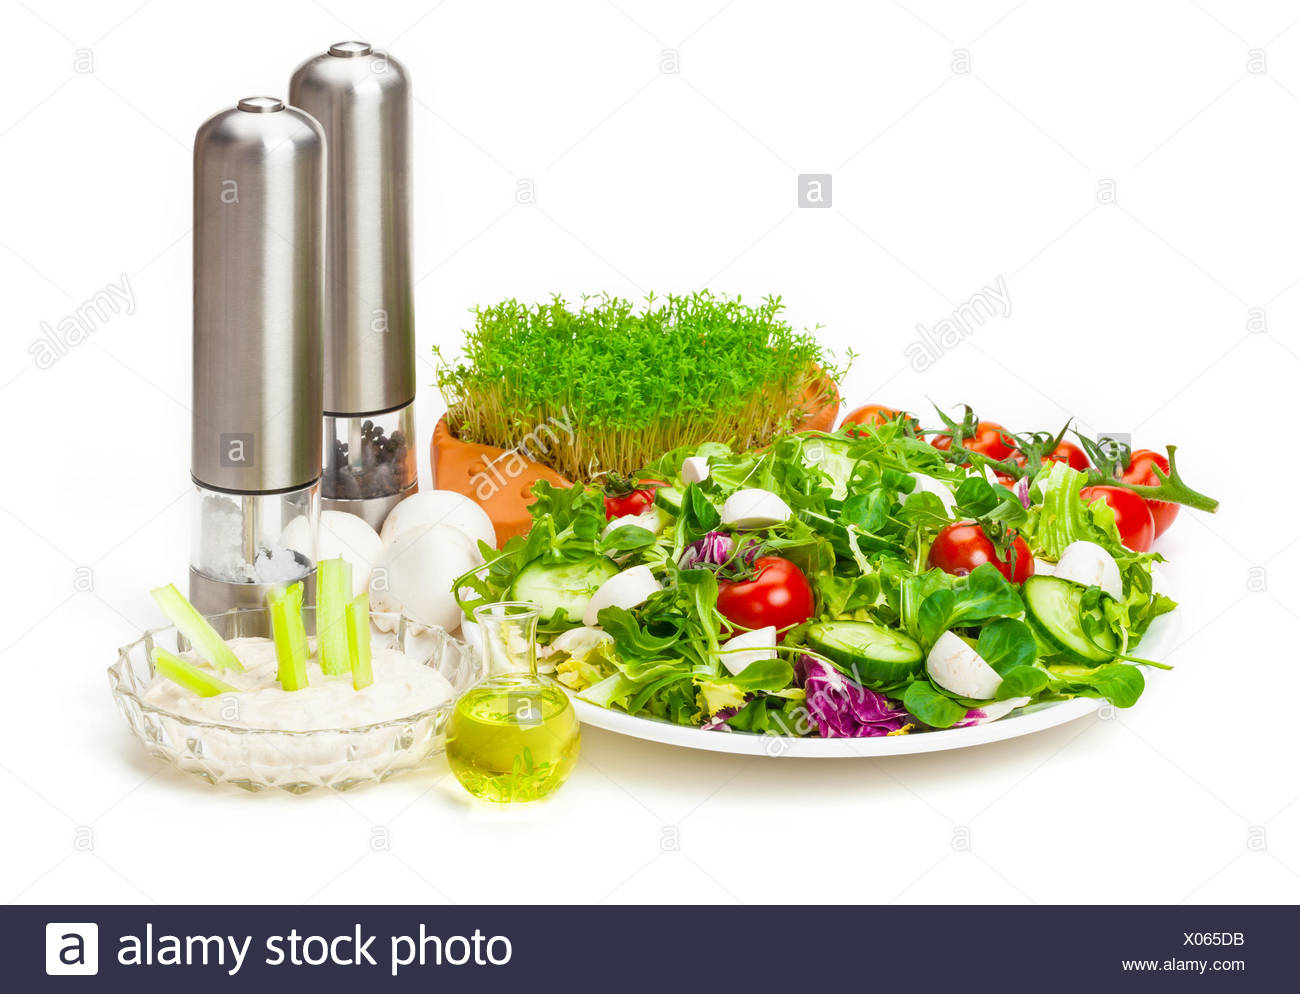 Mixed salad, dip, oil, spice grinders Stock Photo